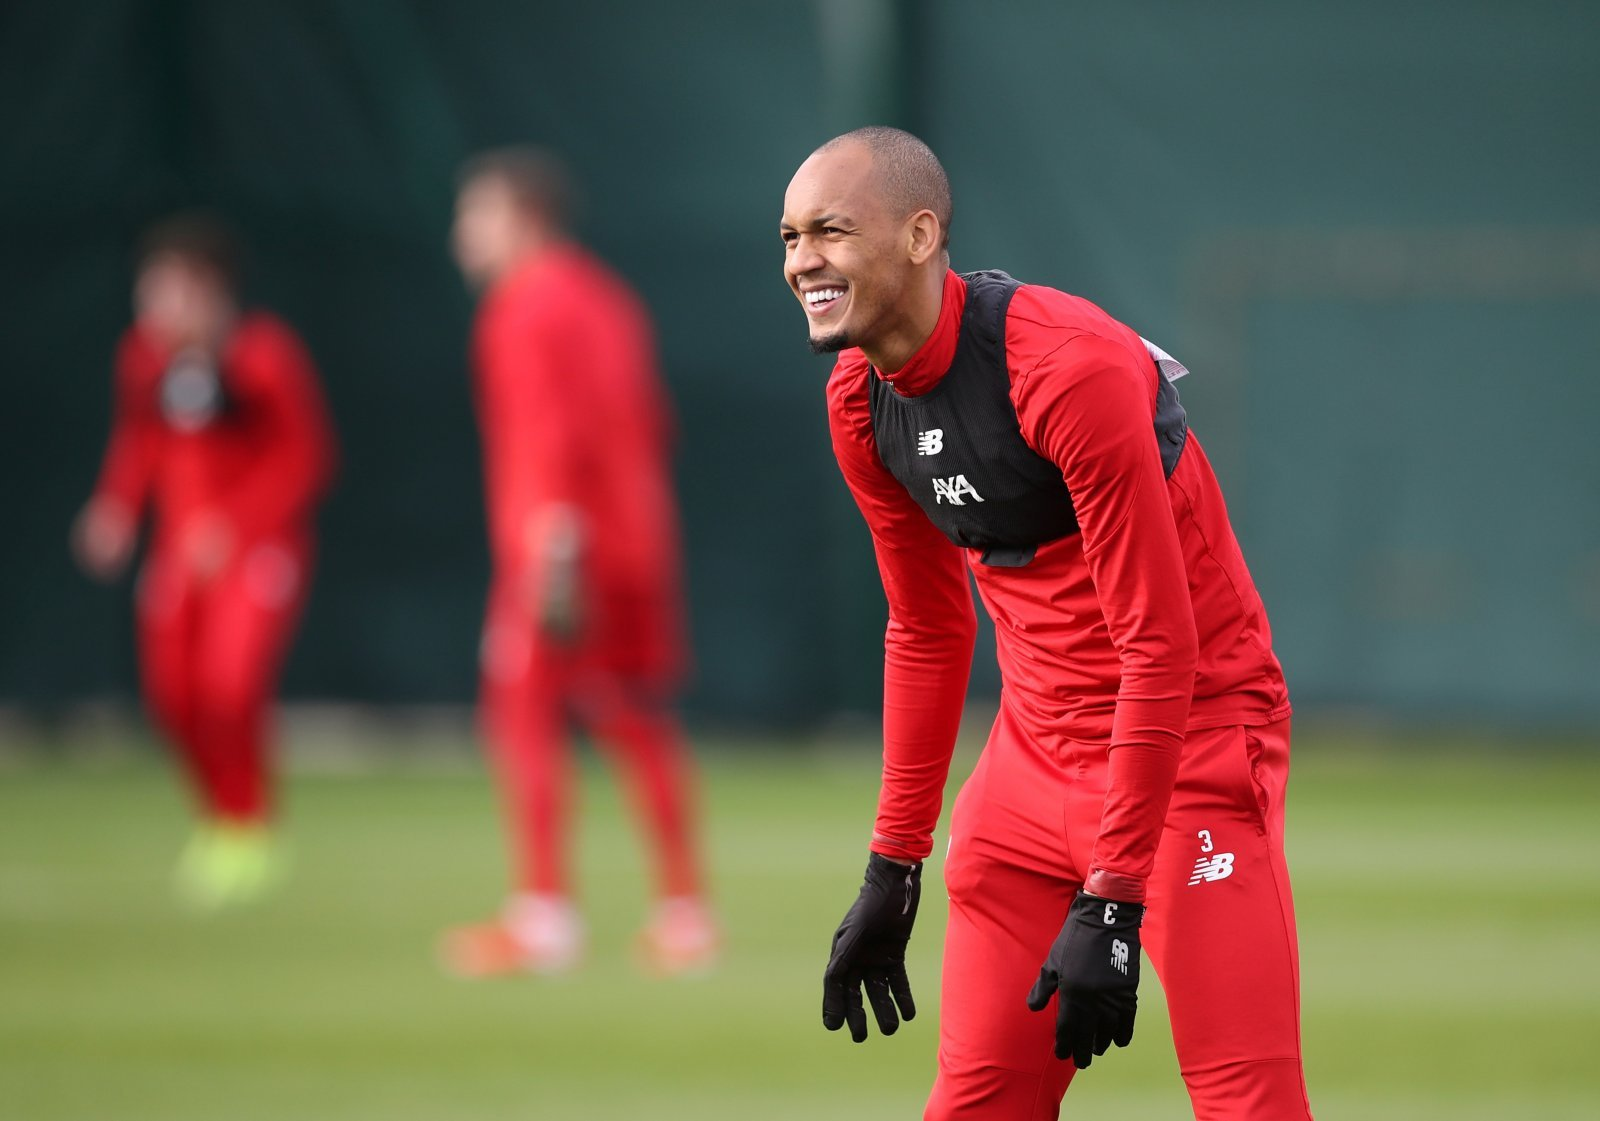 Liverpool: Fans welcome back Fabinho with open arms as he returns from injury